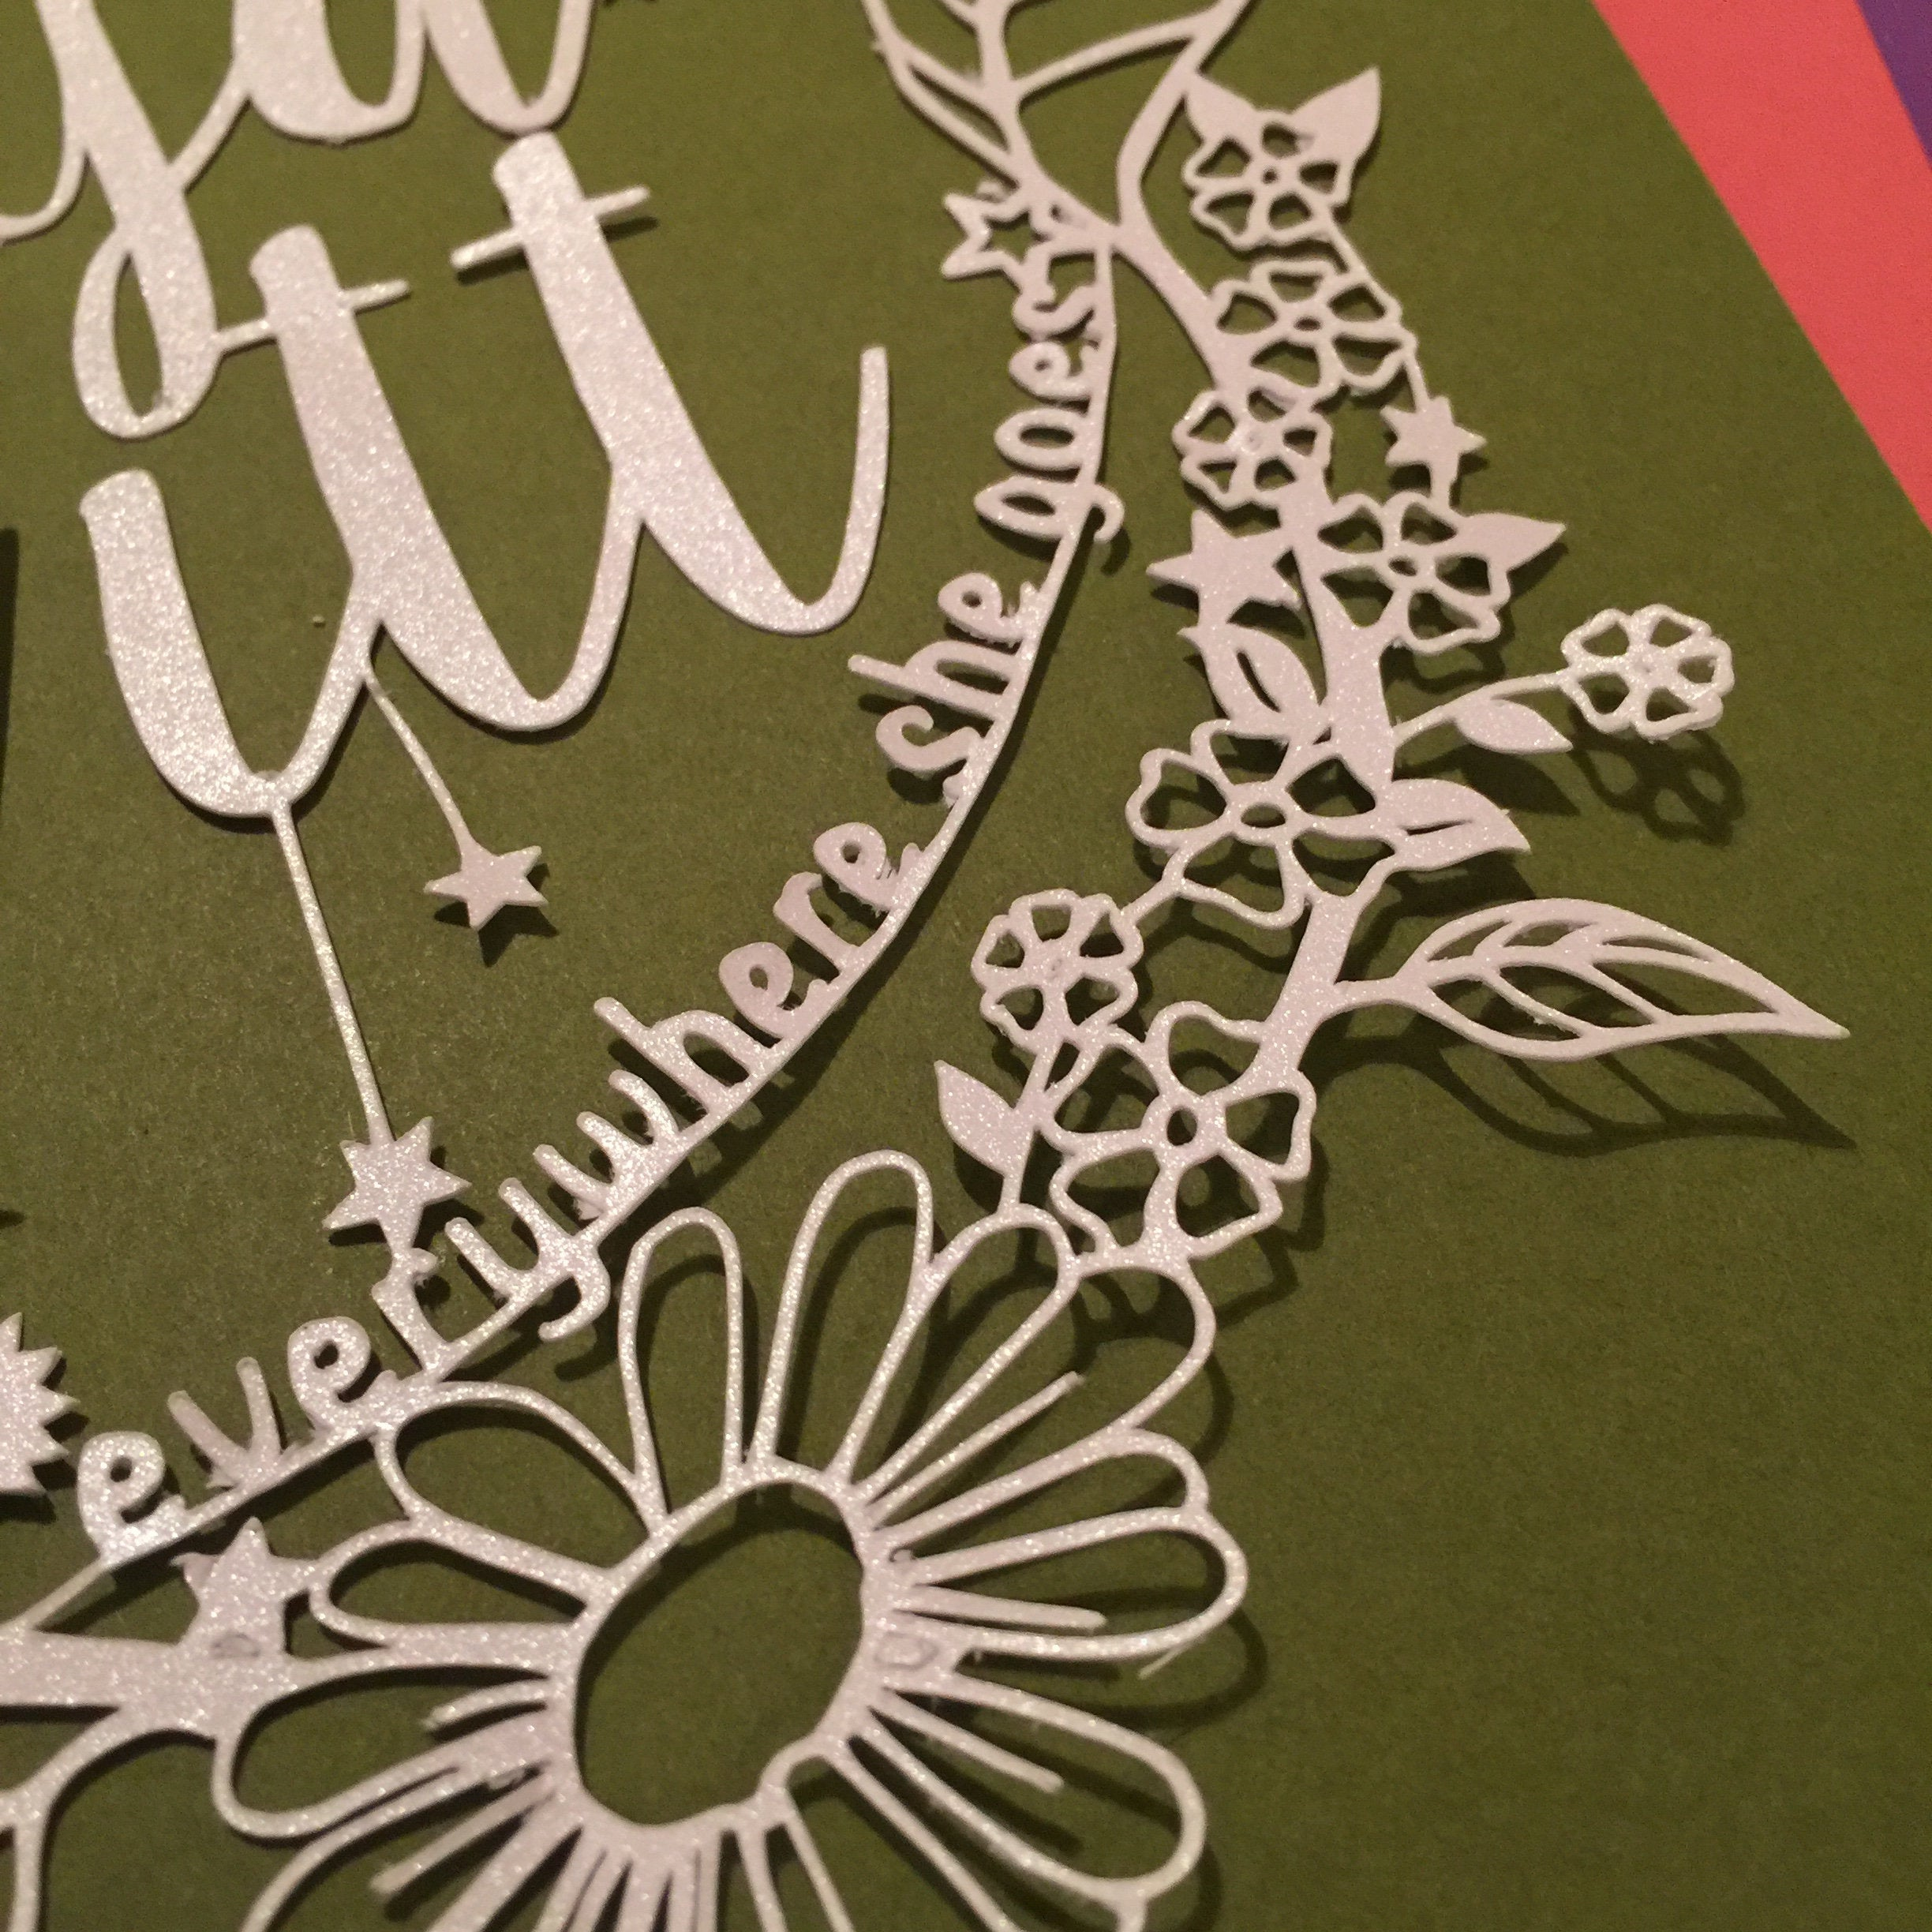 'She Leaves A Little Sparkle Everywhere She Goes' Paper Cut Wall Art